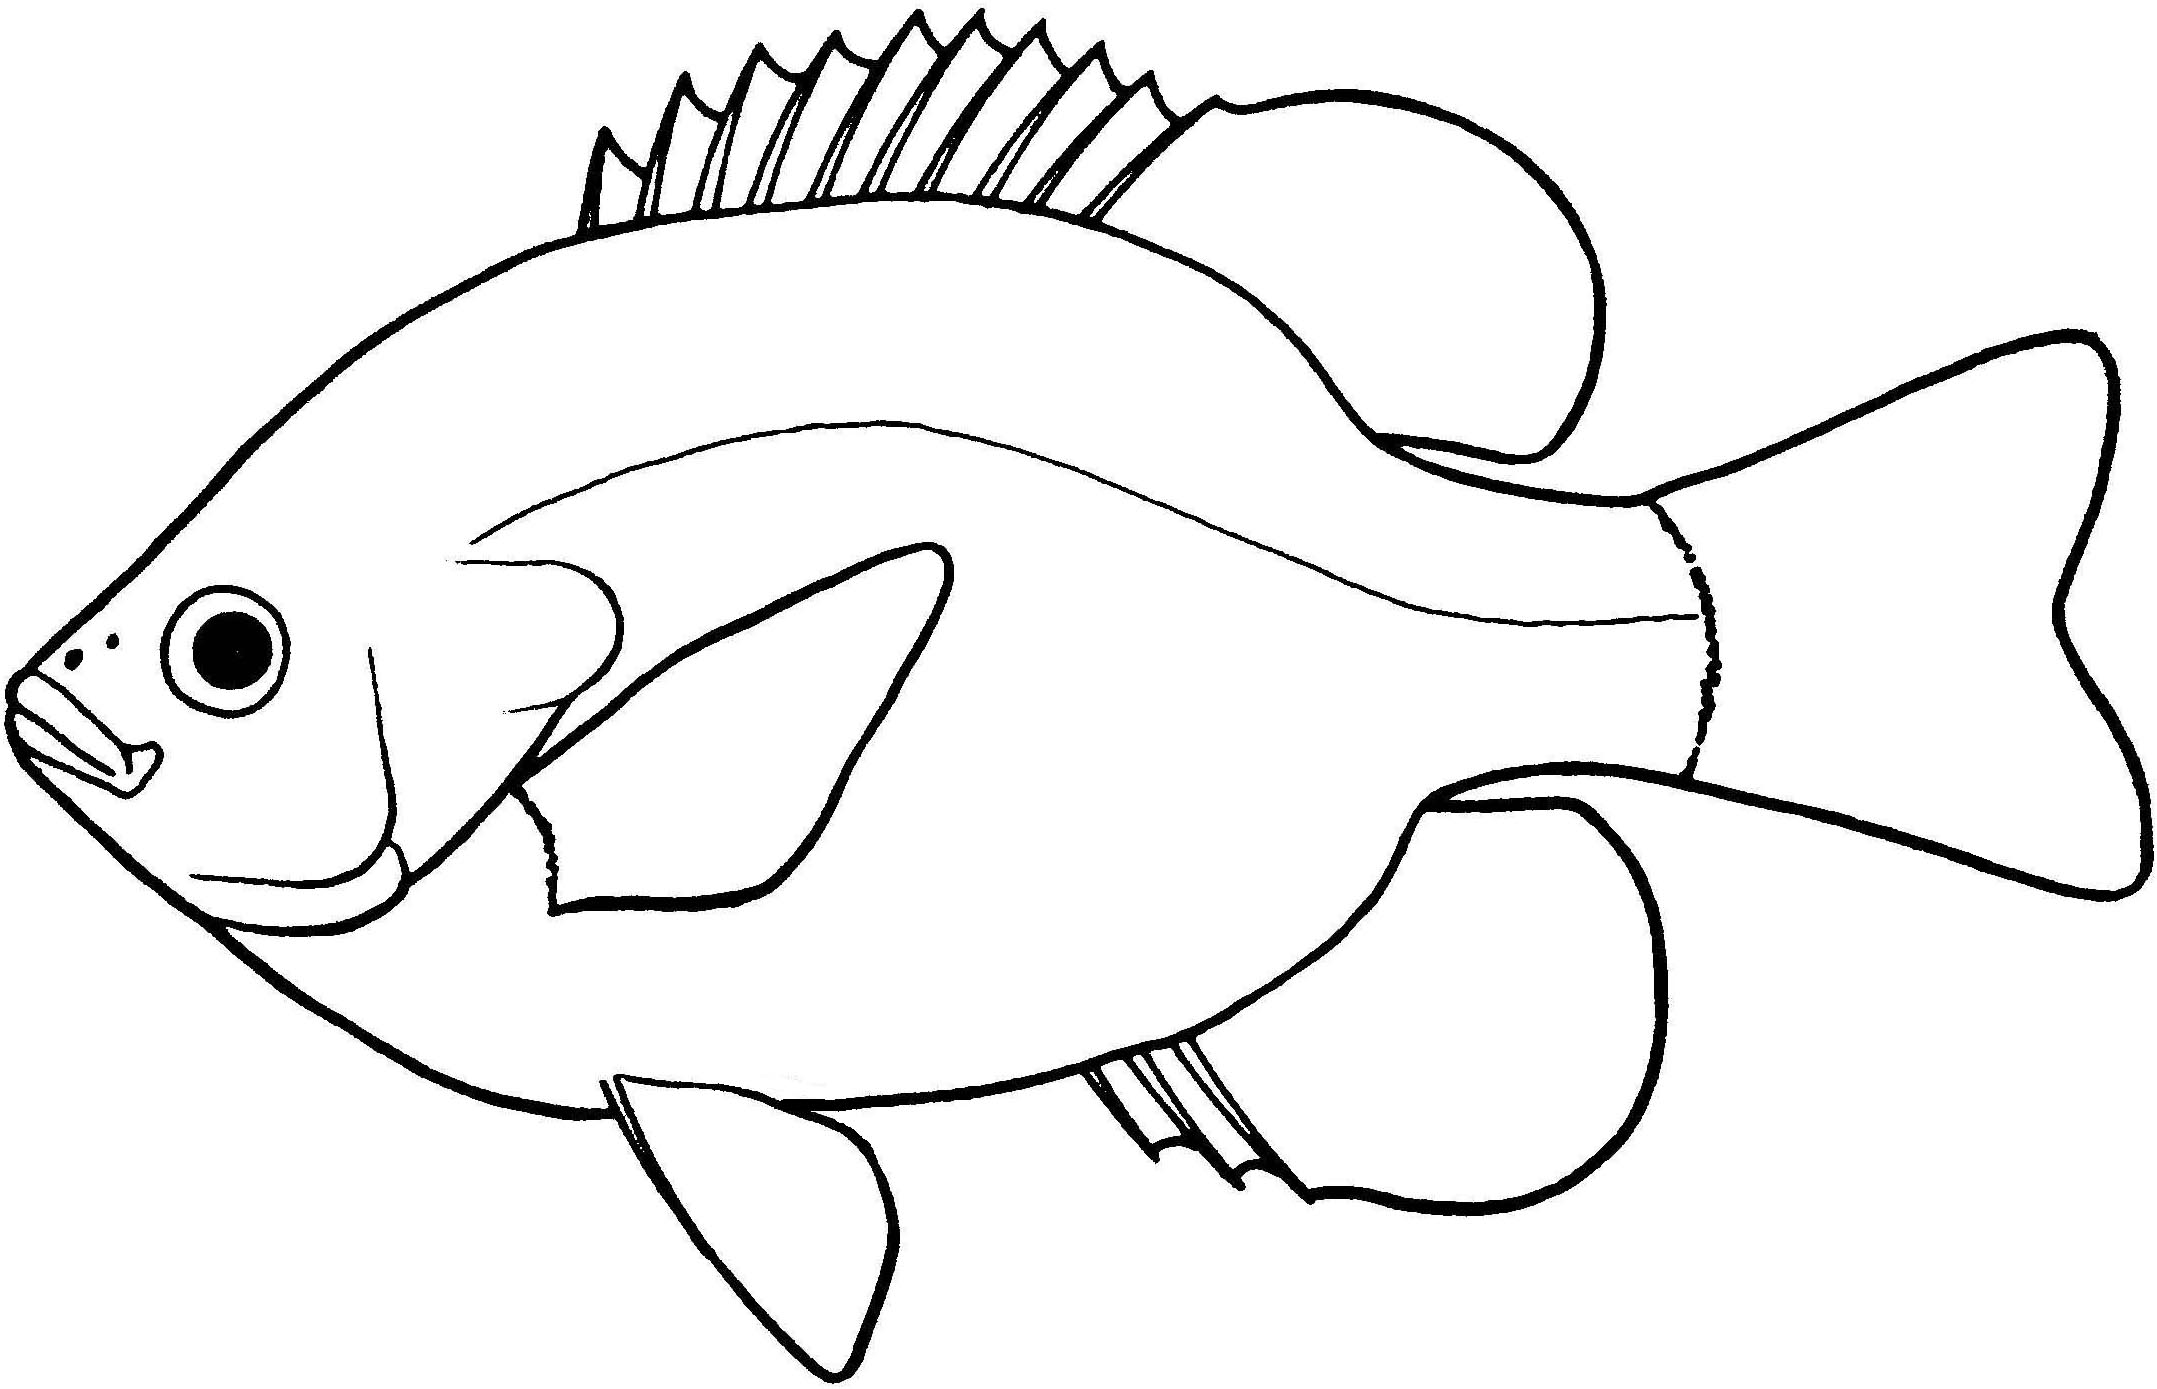 Line Drawing Of Fish : Largemouth bass fish outline sketch coloring page